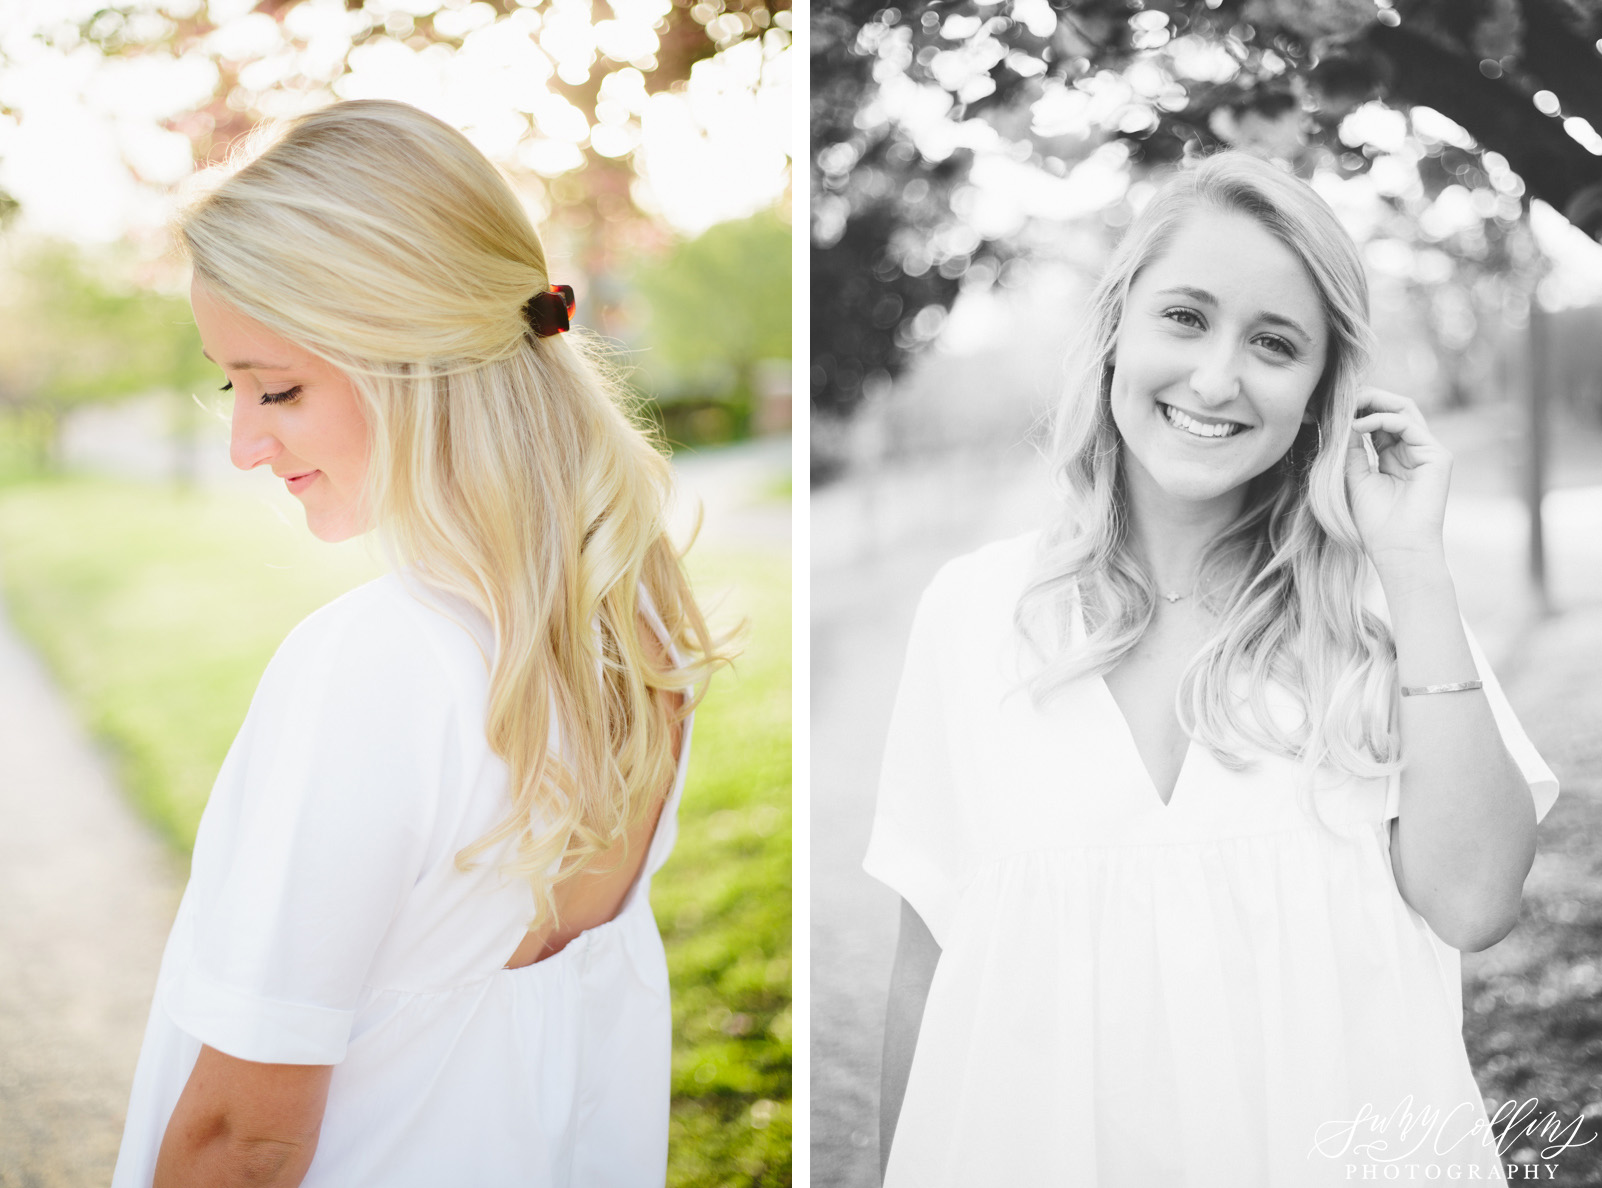 knoxville, Sequoyah hills, female, senior, portraits, graduate, university of Tennessee, Knoxville, poses, cherry blossoms, outfits, ideas, college, inspiration, natural light, light and airy, vibrant, colorful, bright, outdoors, head shots, sunset, black and white